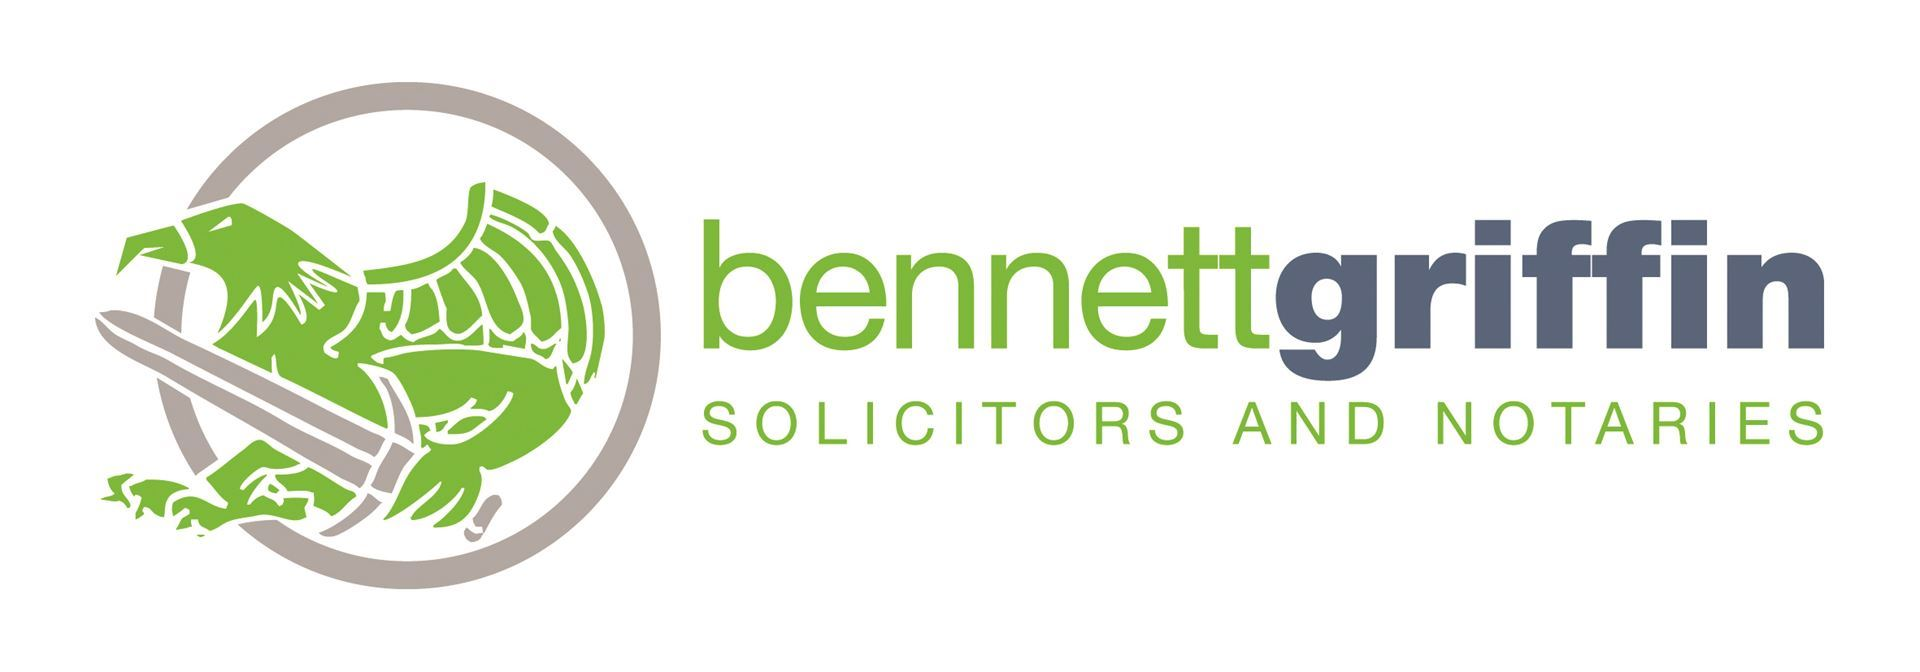 Worthing Adur Chamber Of Commerce Exhibitors Bennett Wiring Diagram Griffin Are Award Winning Solicitors In West Sussex Has Been Based And The Surrounding Areas Since 1990